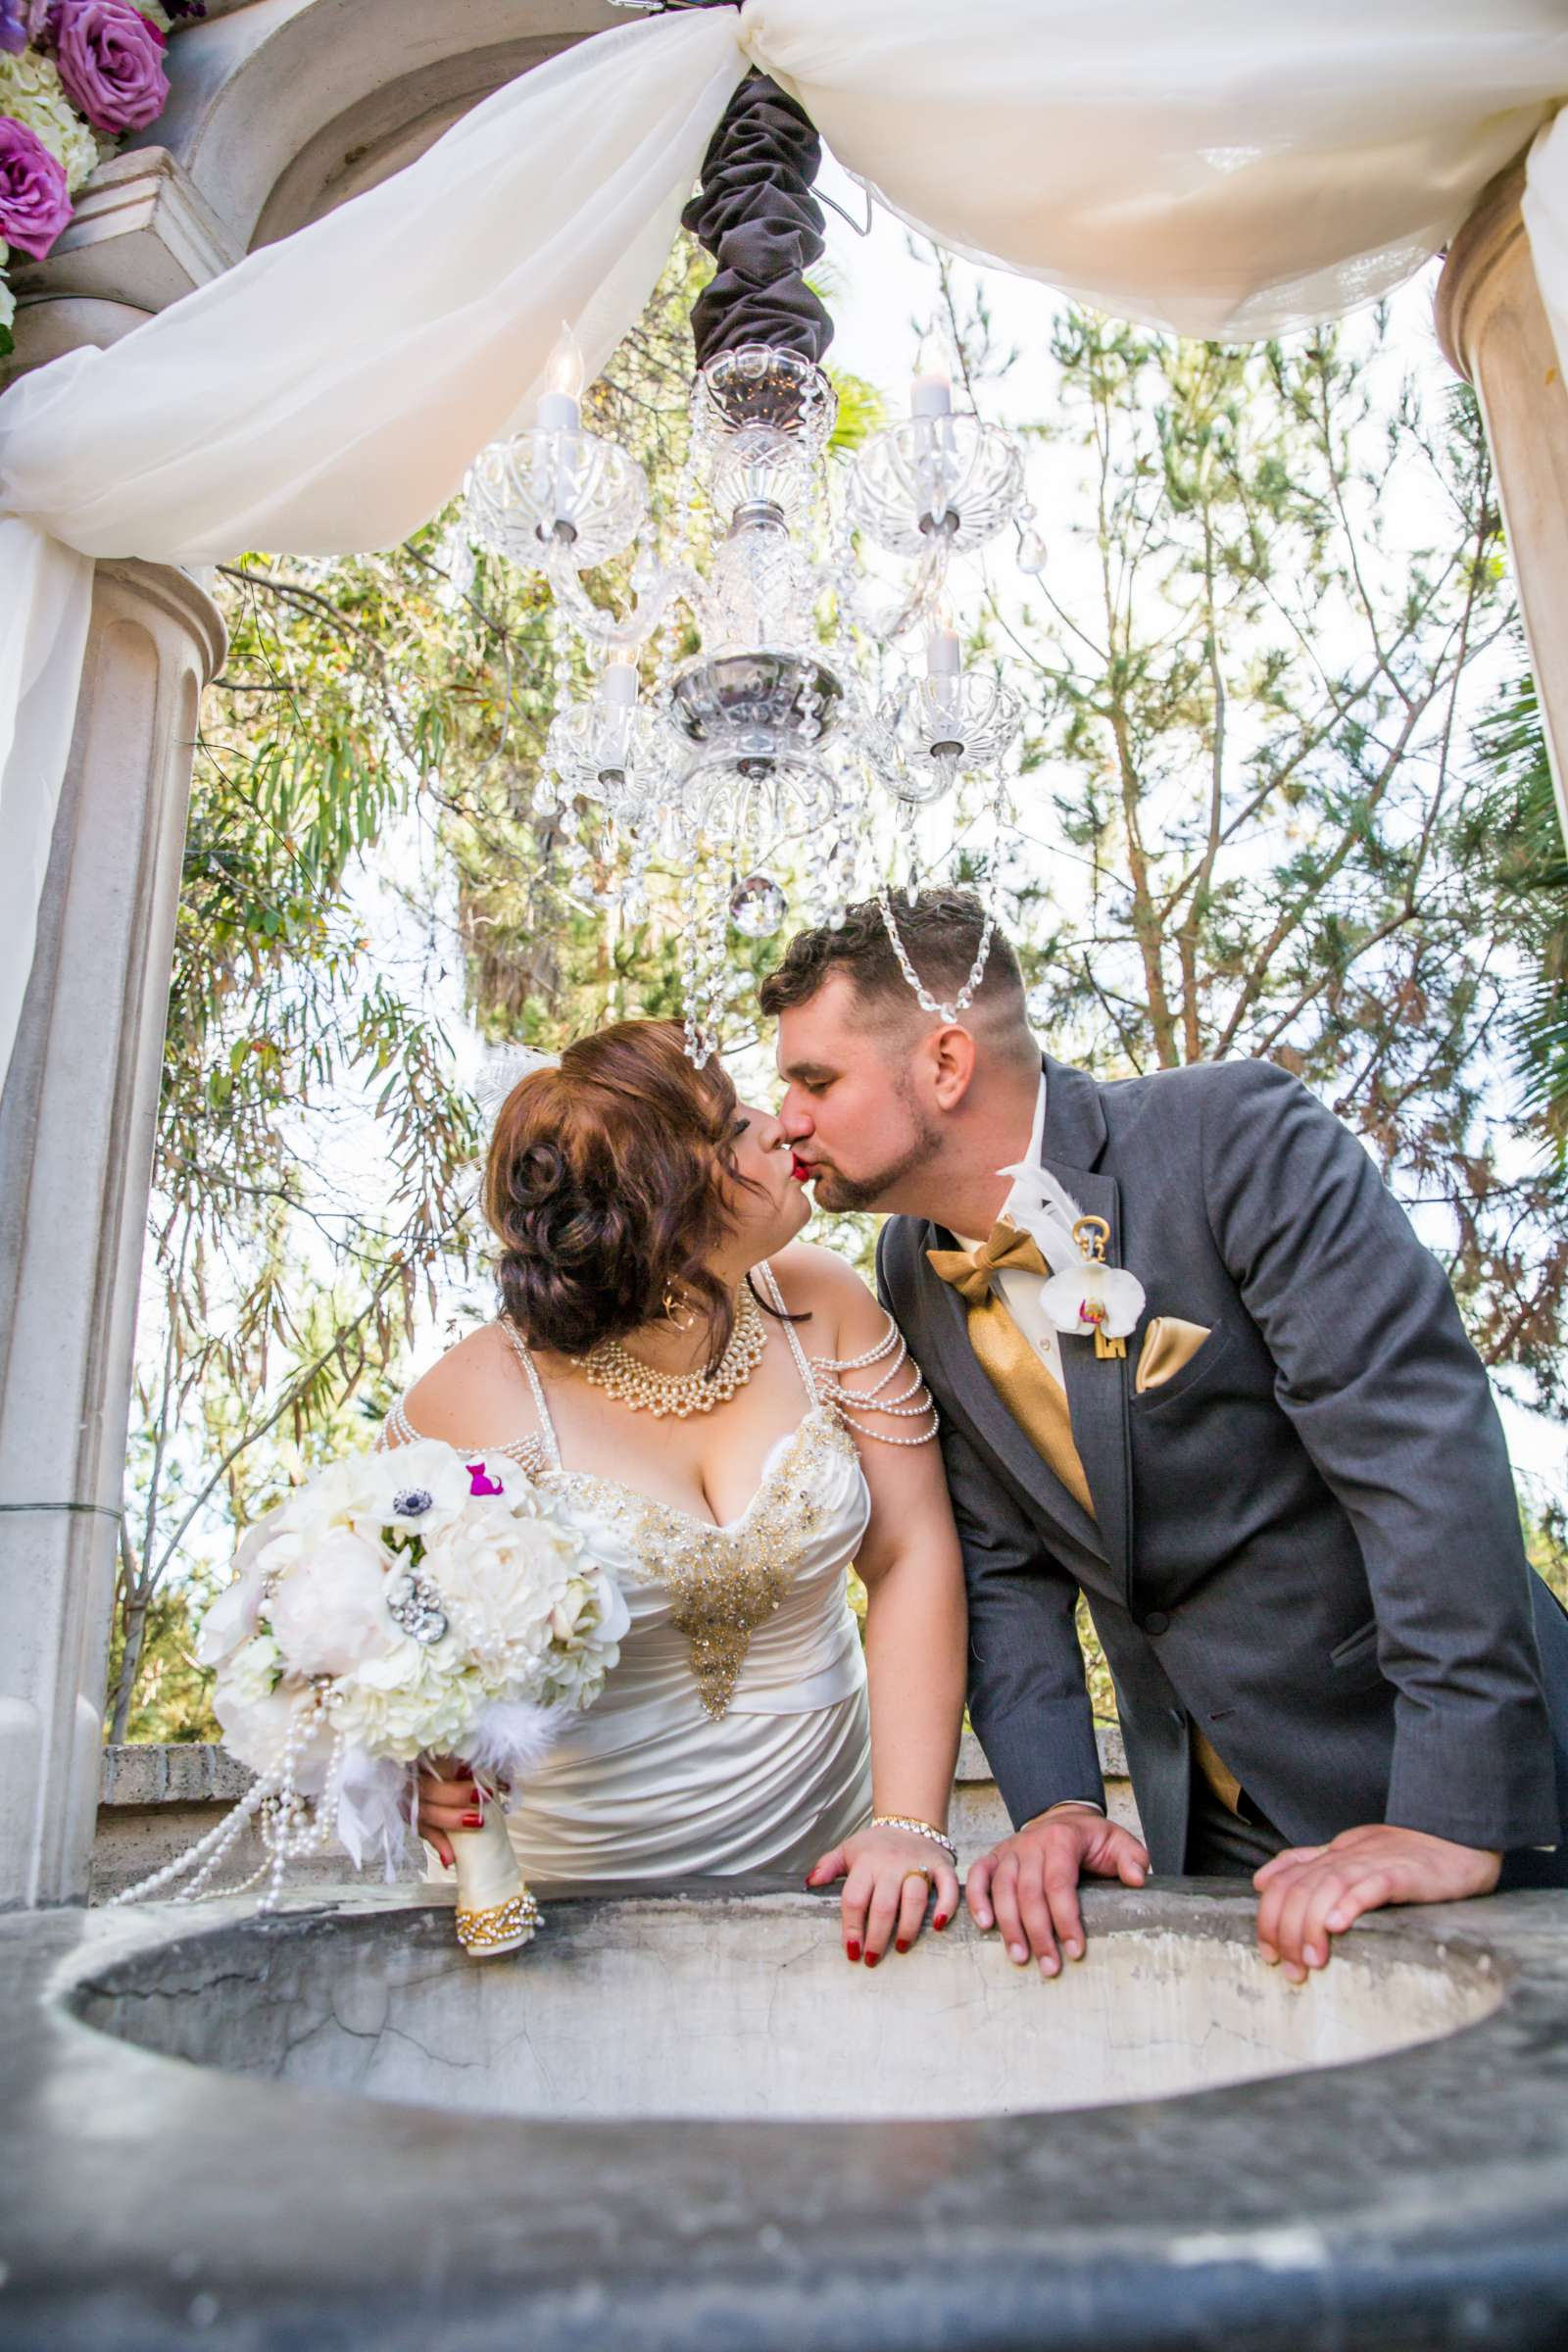 The Prado Wedding coordinated by Breezy Day Weddings, Aalis and Michael Wedding Photo #72 by True Photography